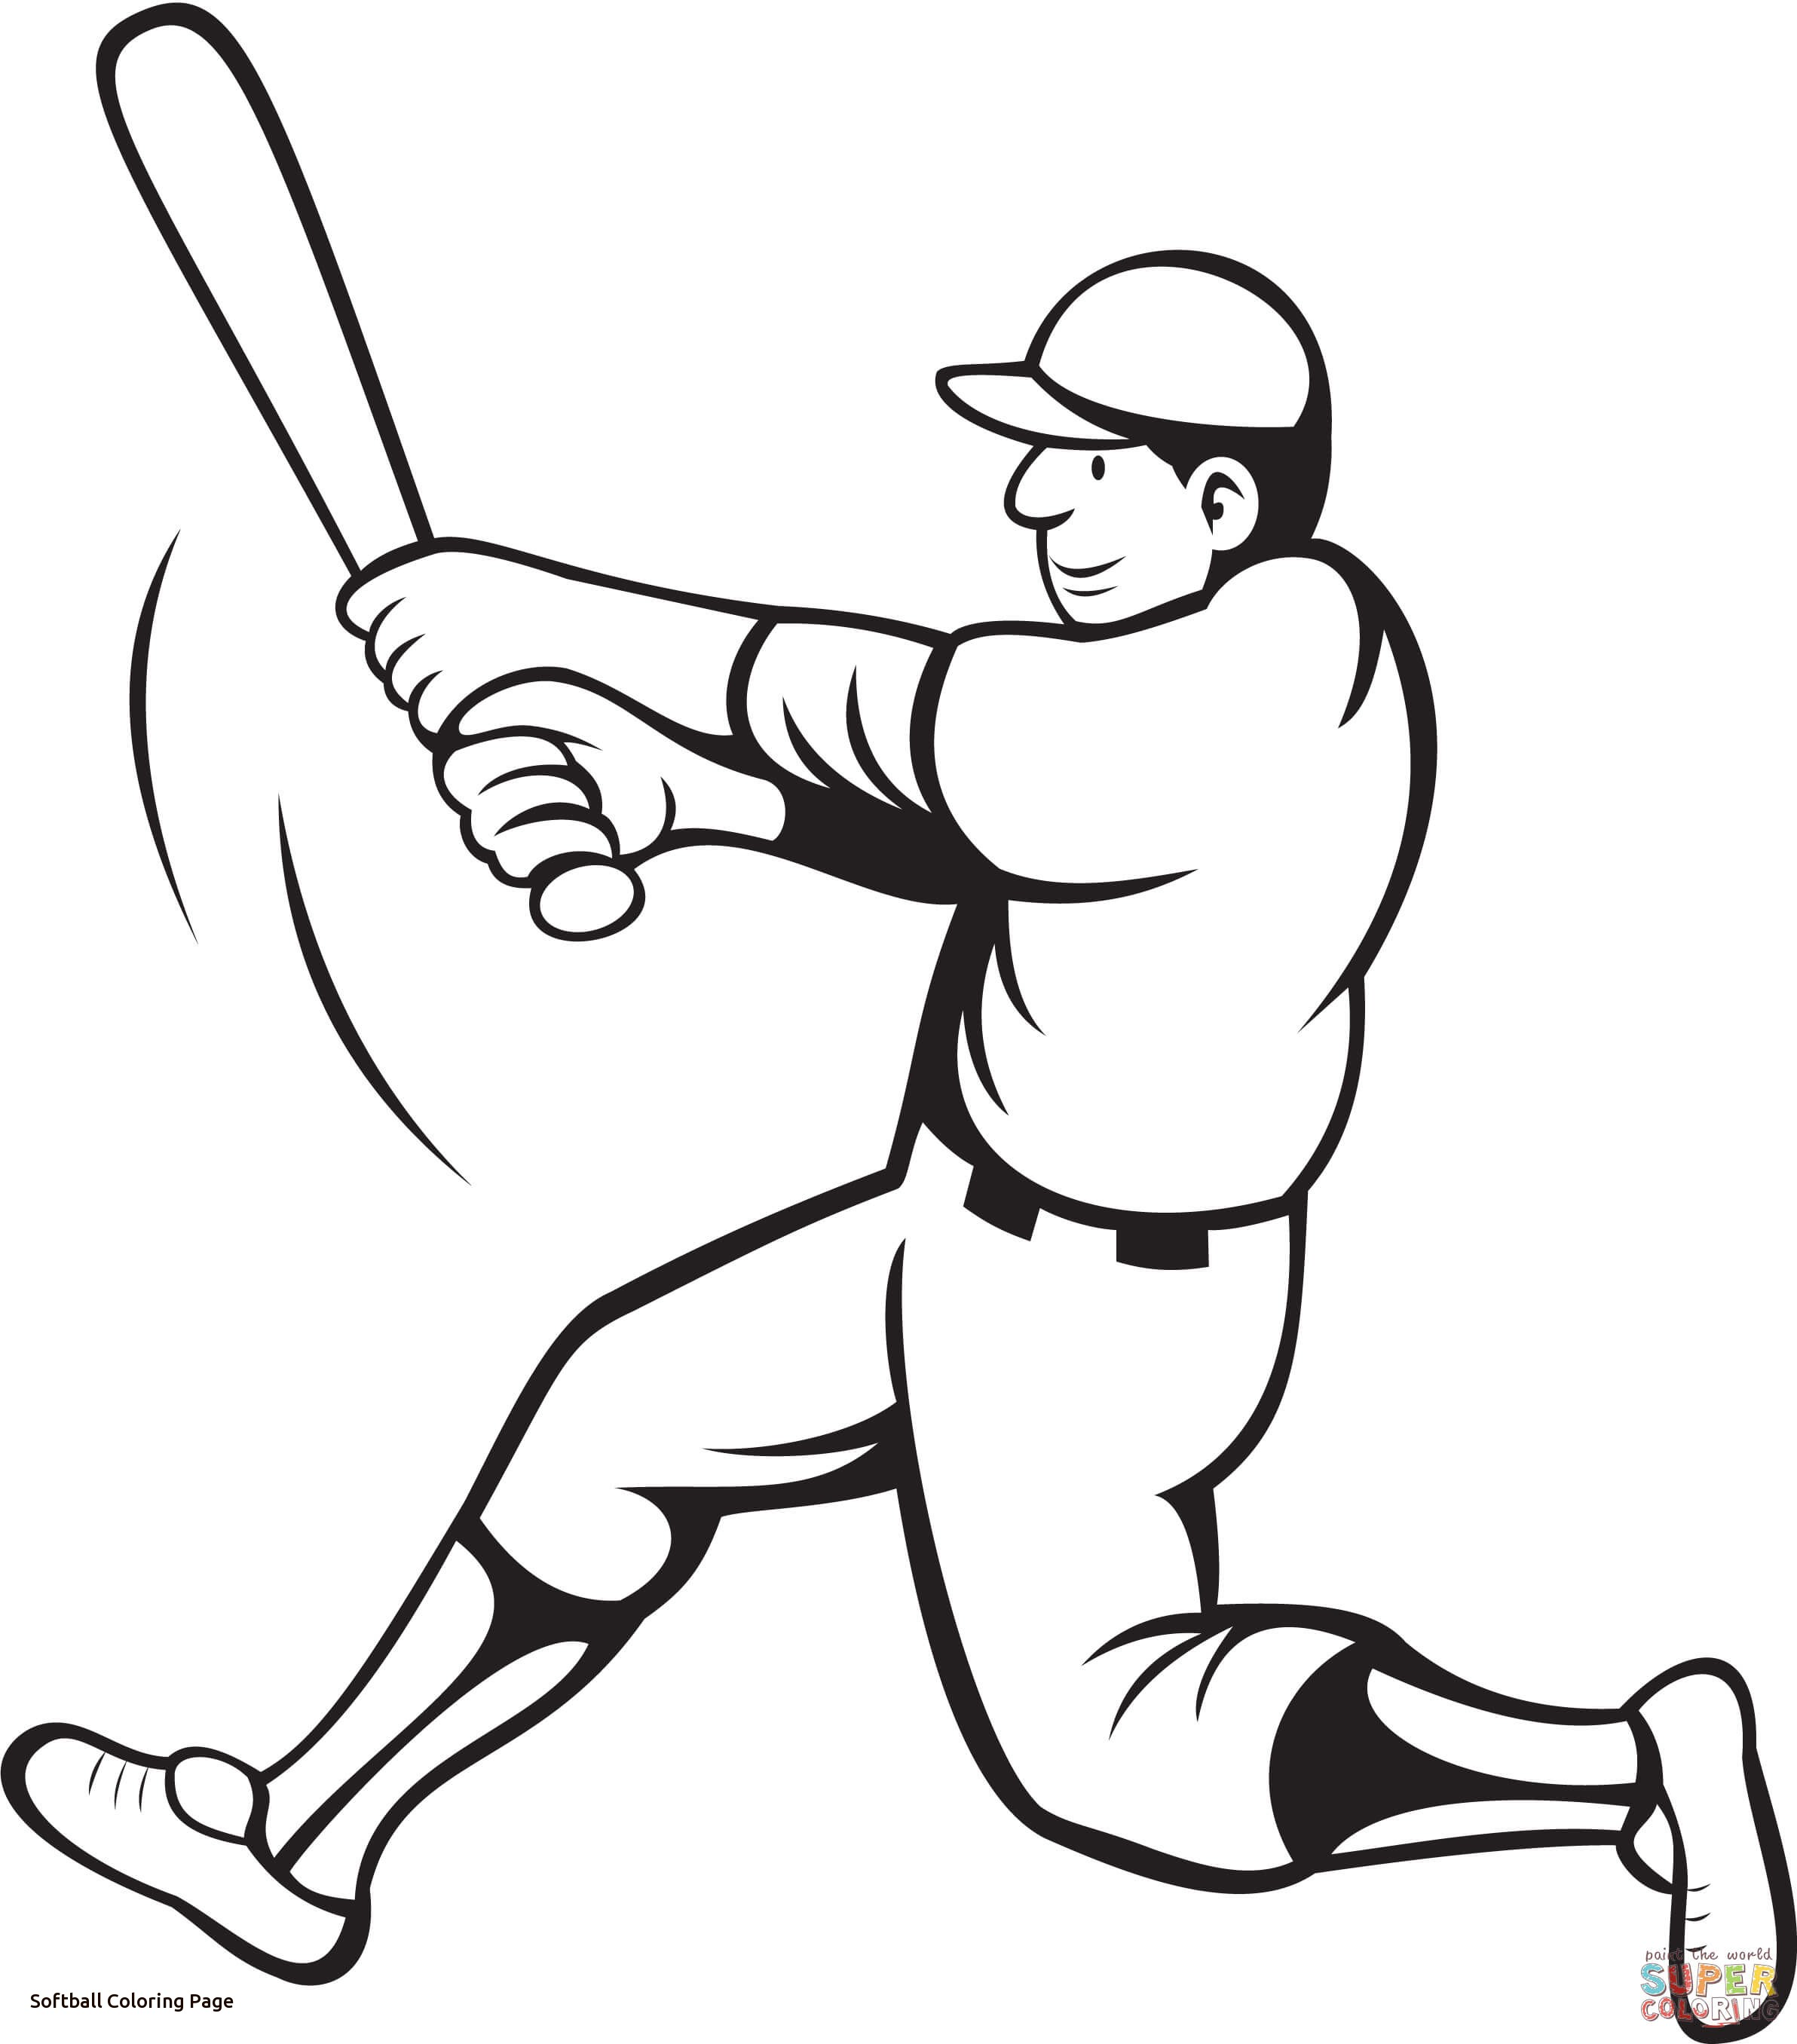 2384x2712 Softball Coloring Pages